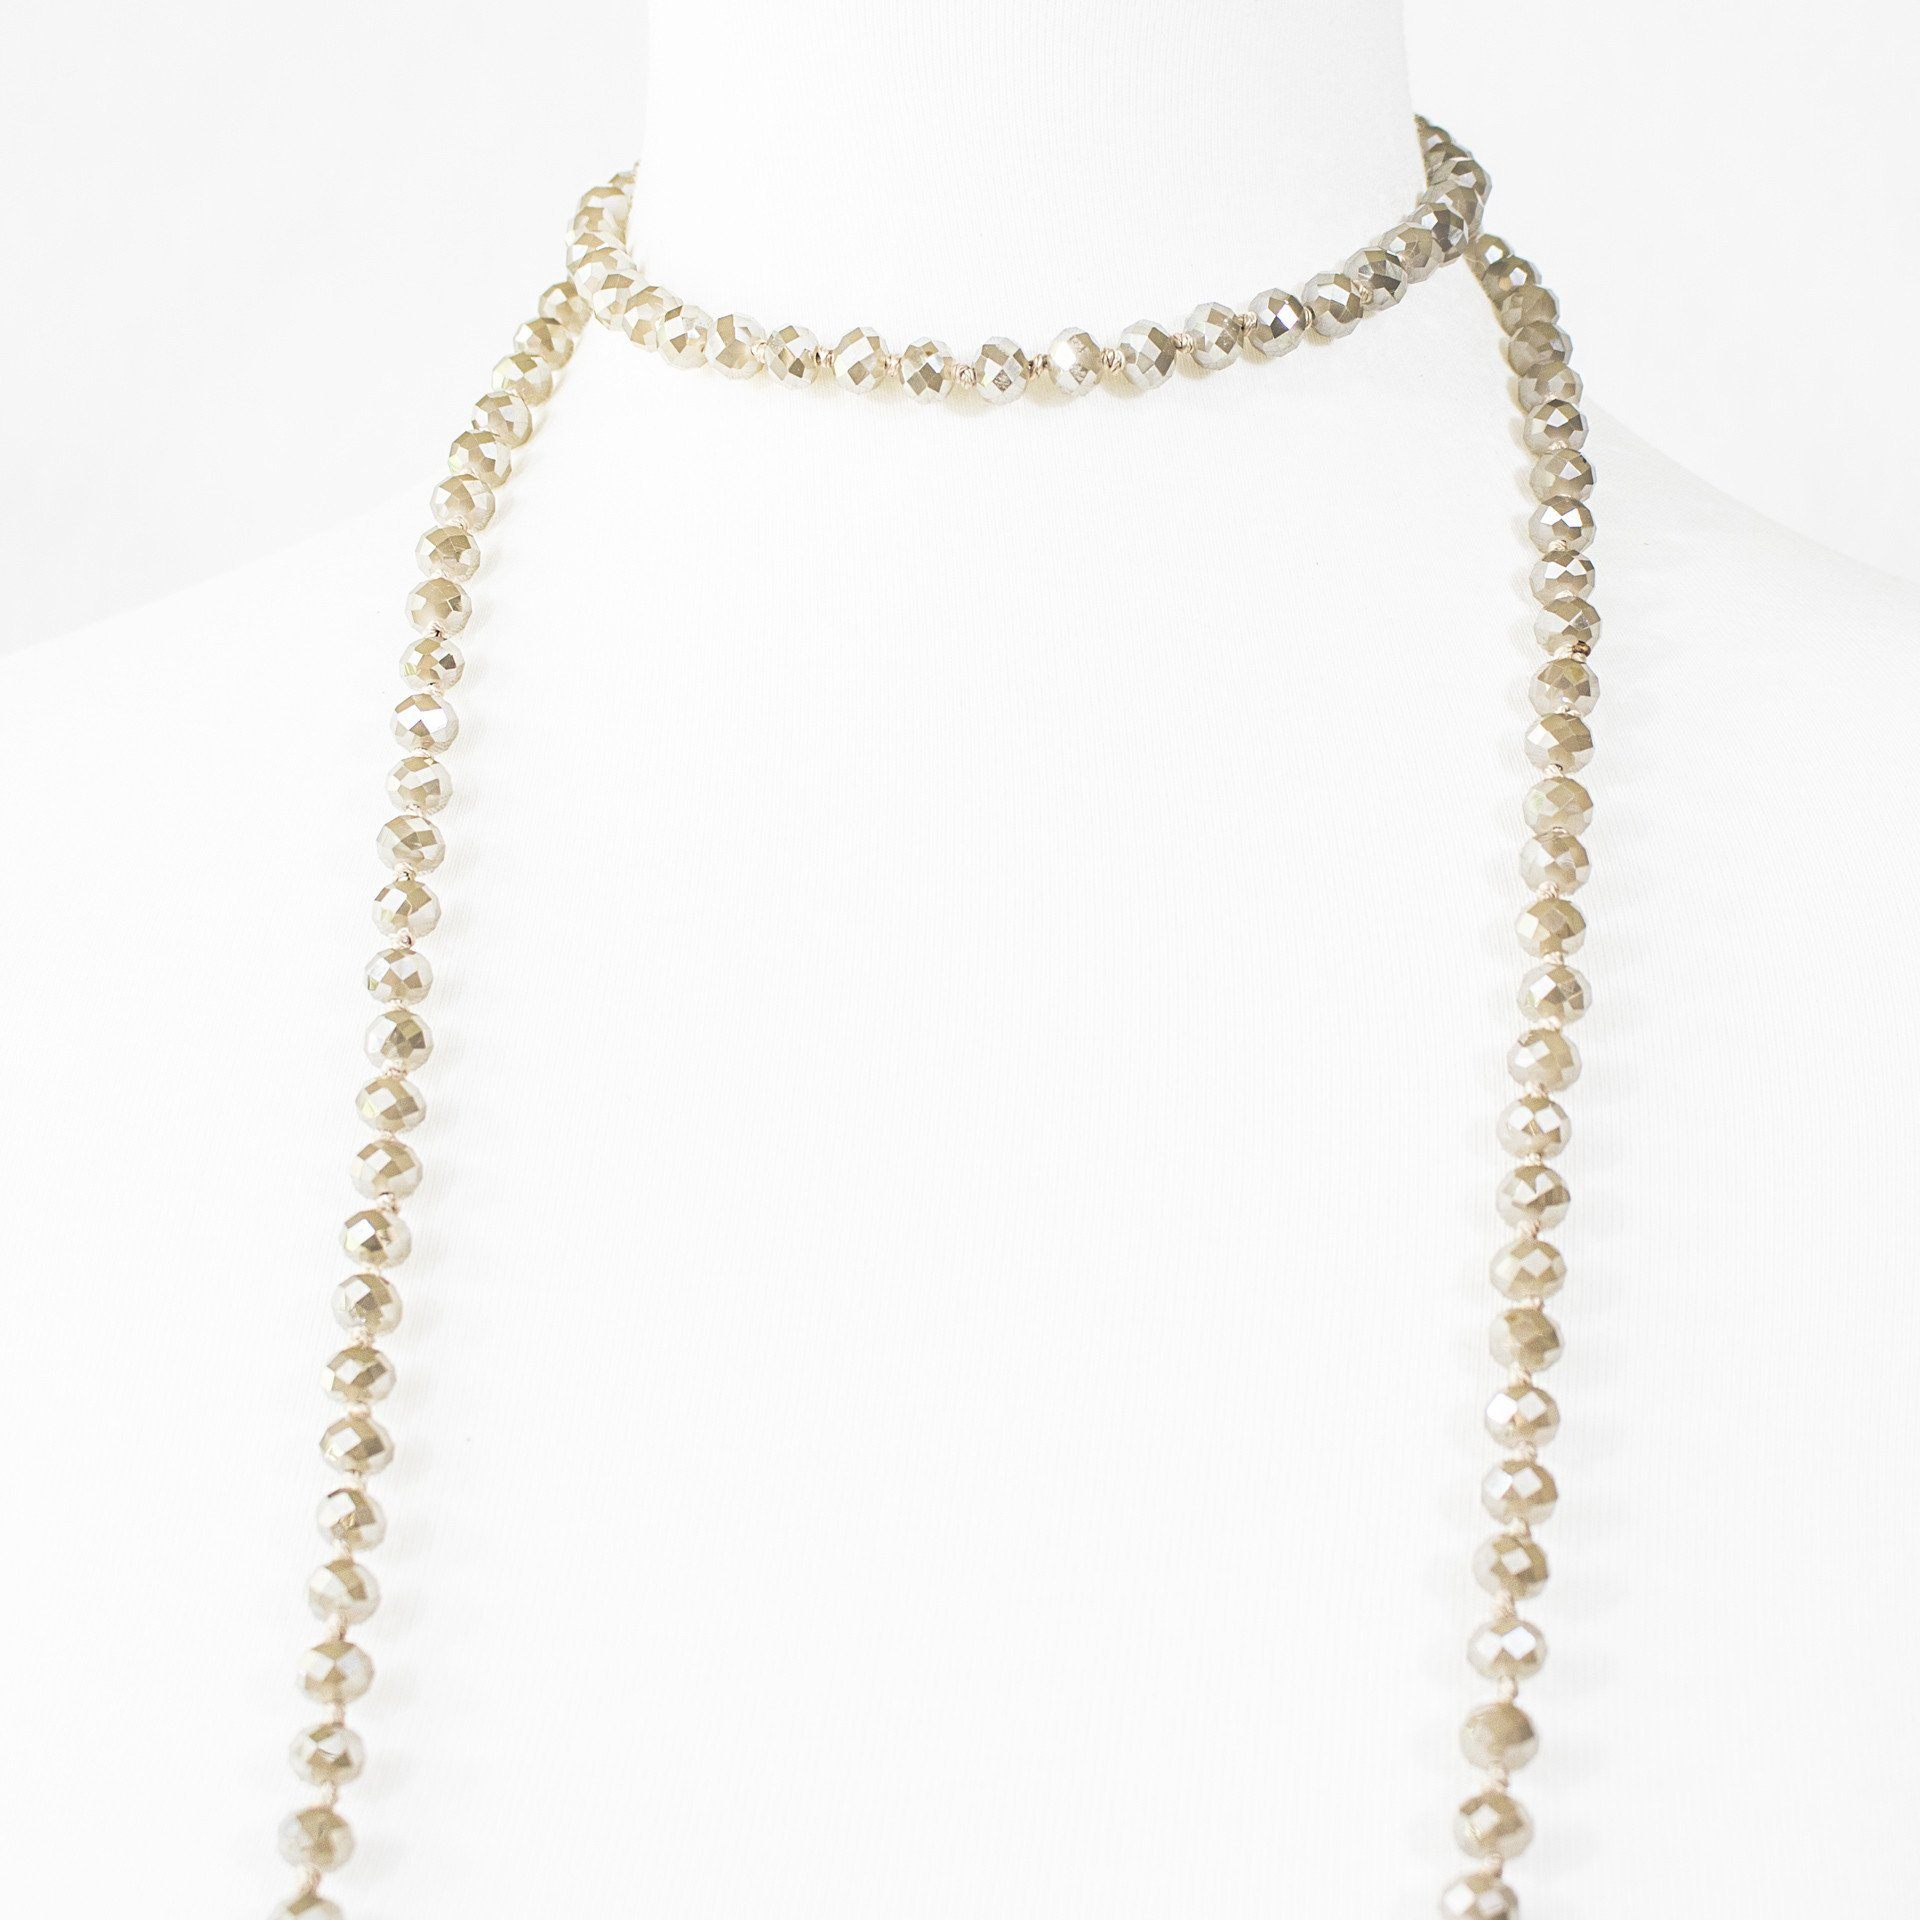 'Cadence' Layered Bead Necklace - Arlo and Arrows